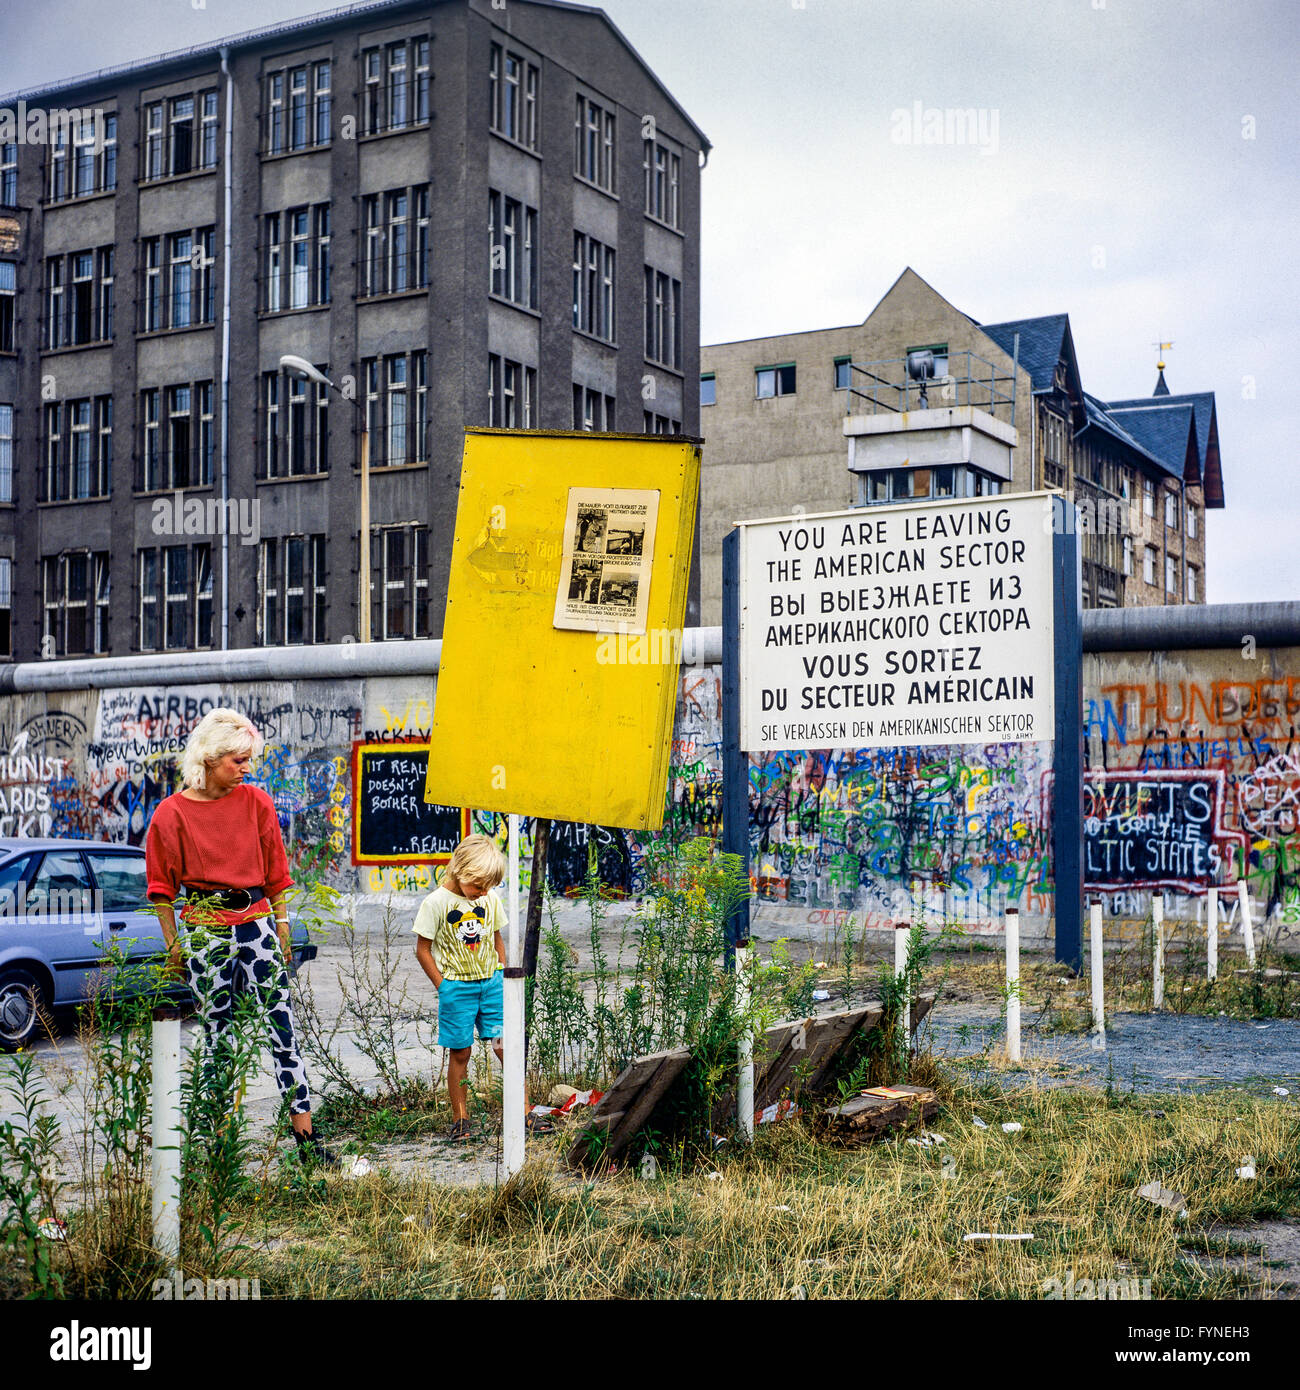 August 1986, woman and boy, leaving American sector warning sign, Berlin Wall graffitis, Zimmerstrasse street, West Stock Photo